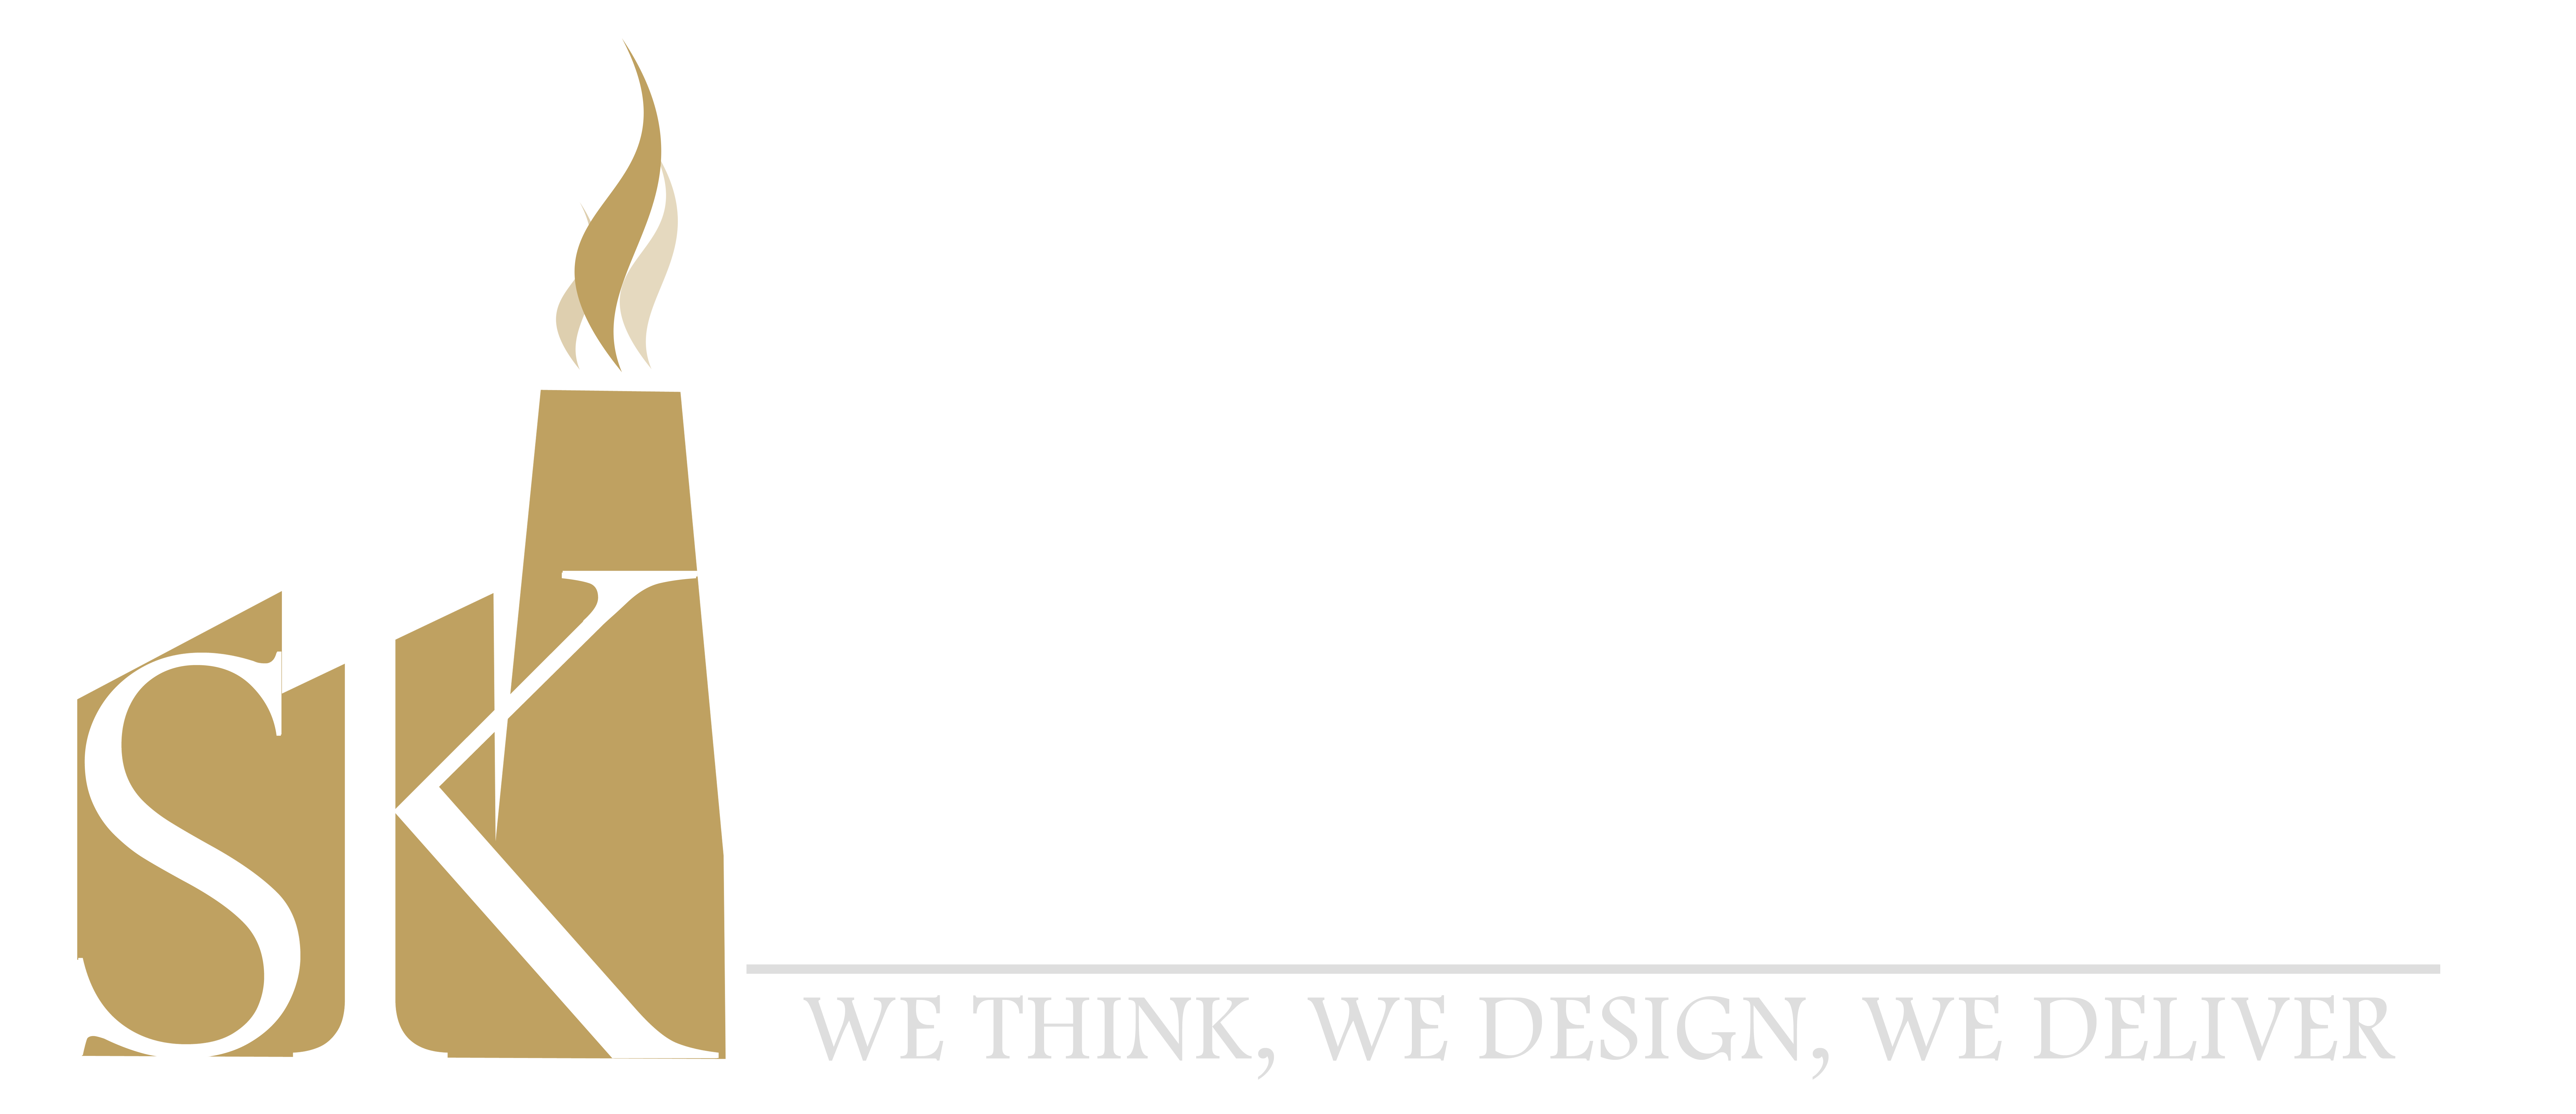 S. K. Enterprises Logo